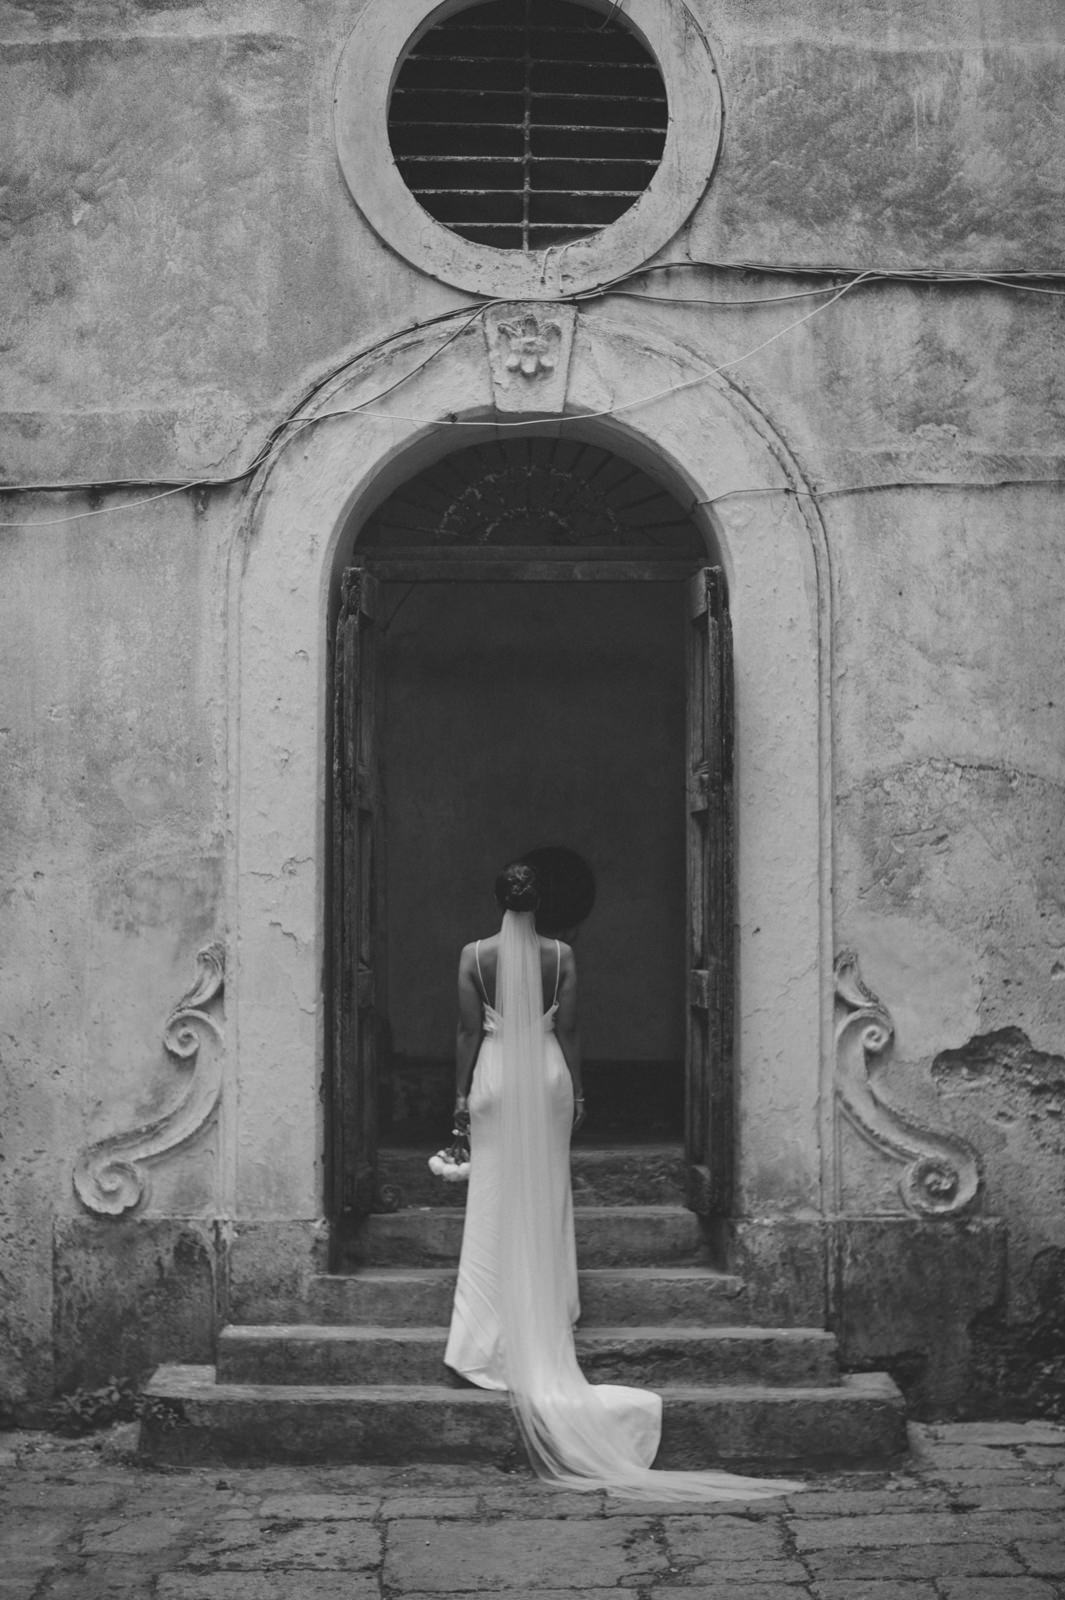 black and white portrait of the bride standing in a typical old Italian courtyard